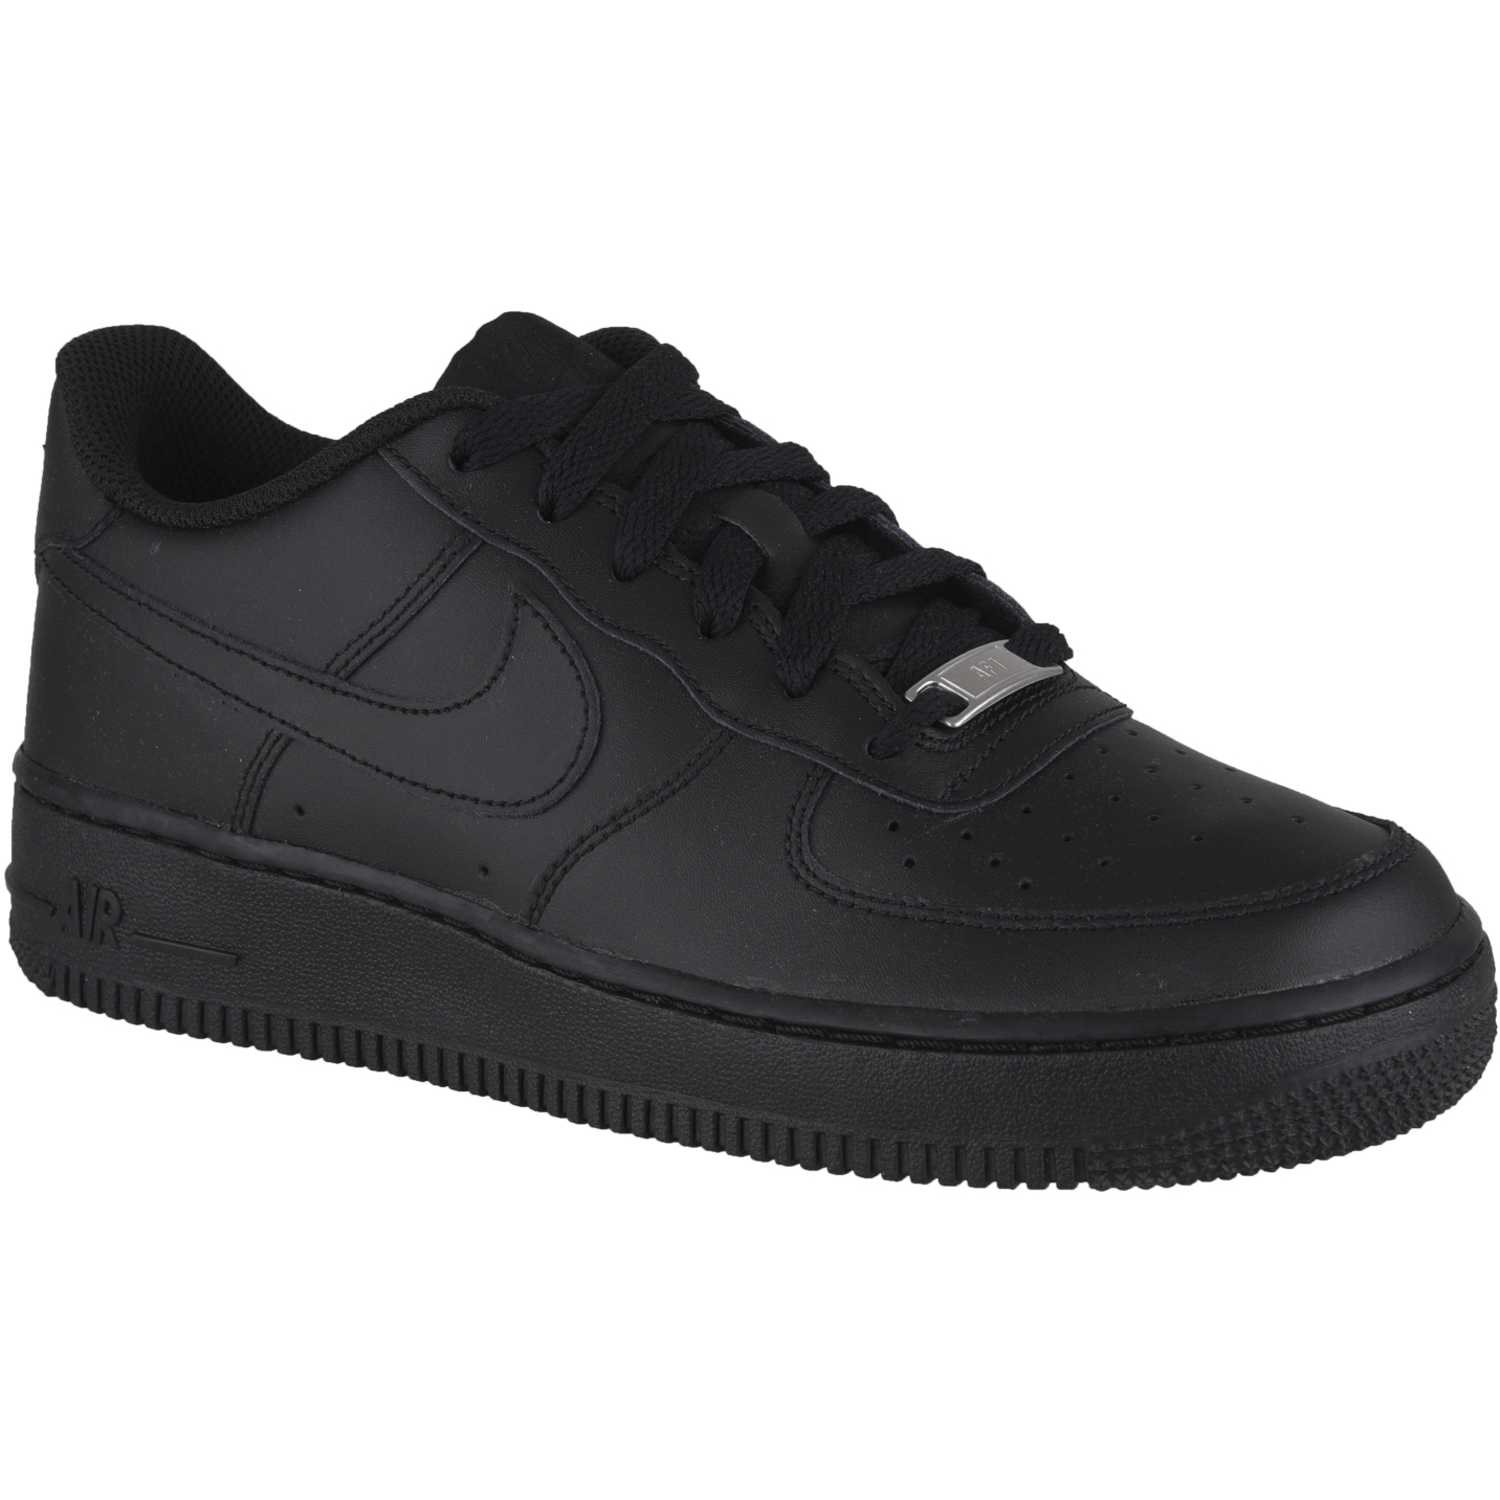 Jovencita Nike Negro Force De Casual 1 Bg Air OXPkZuTi